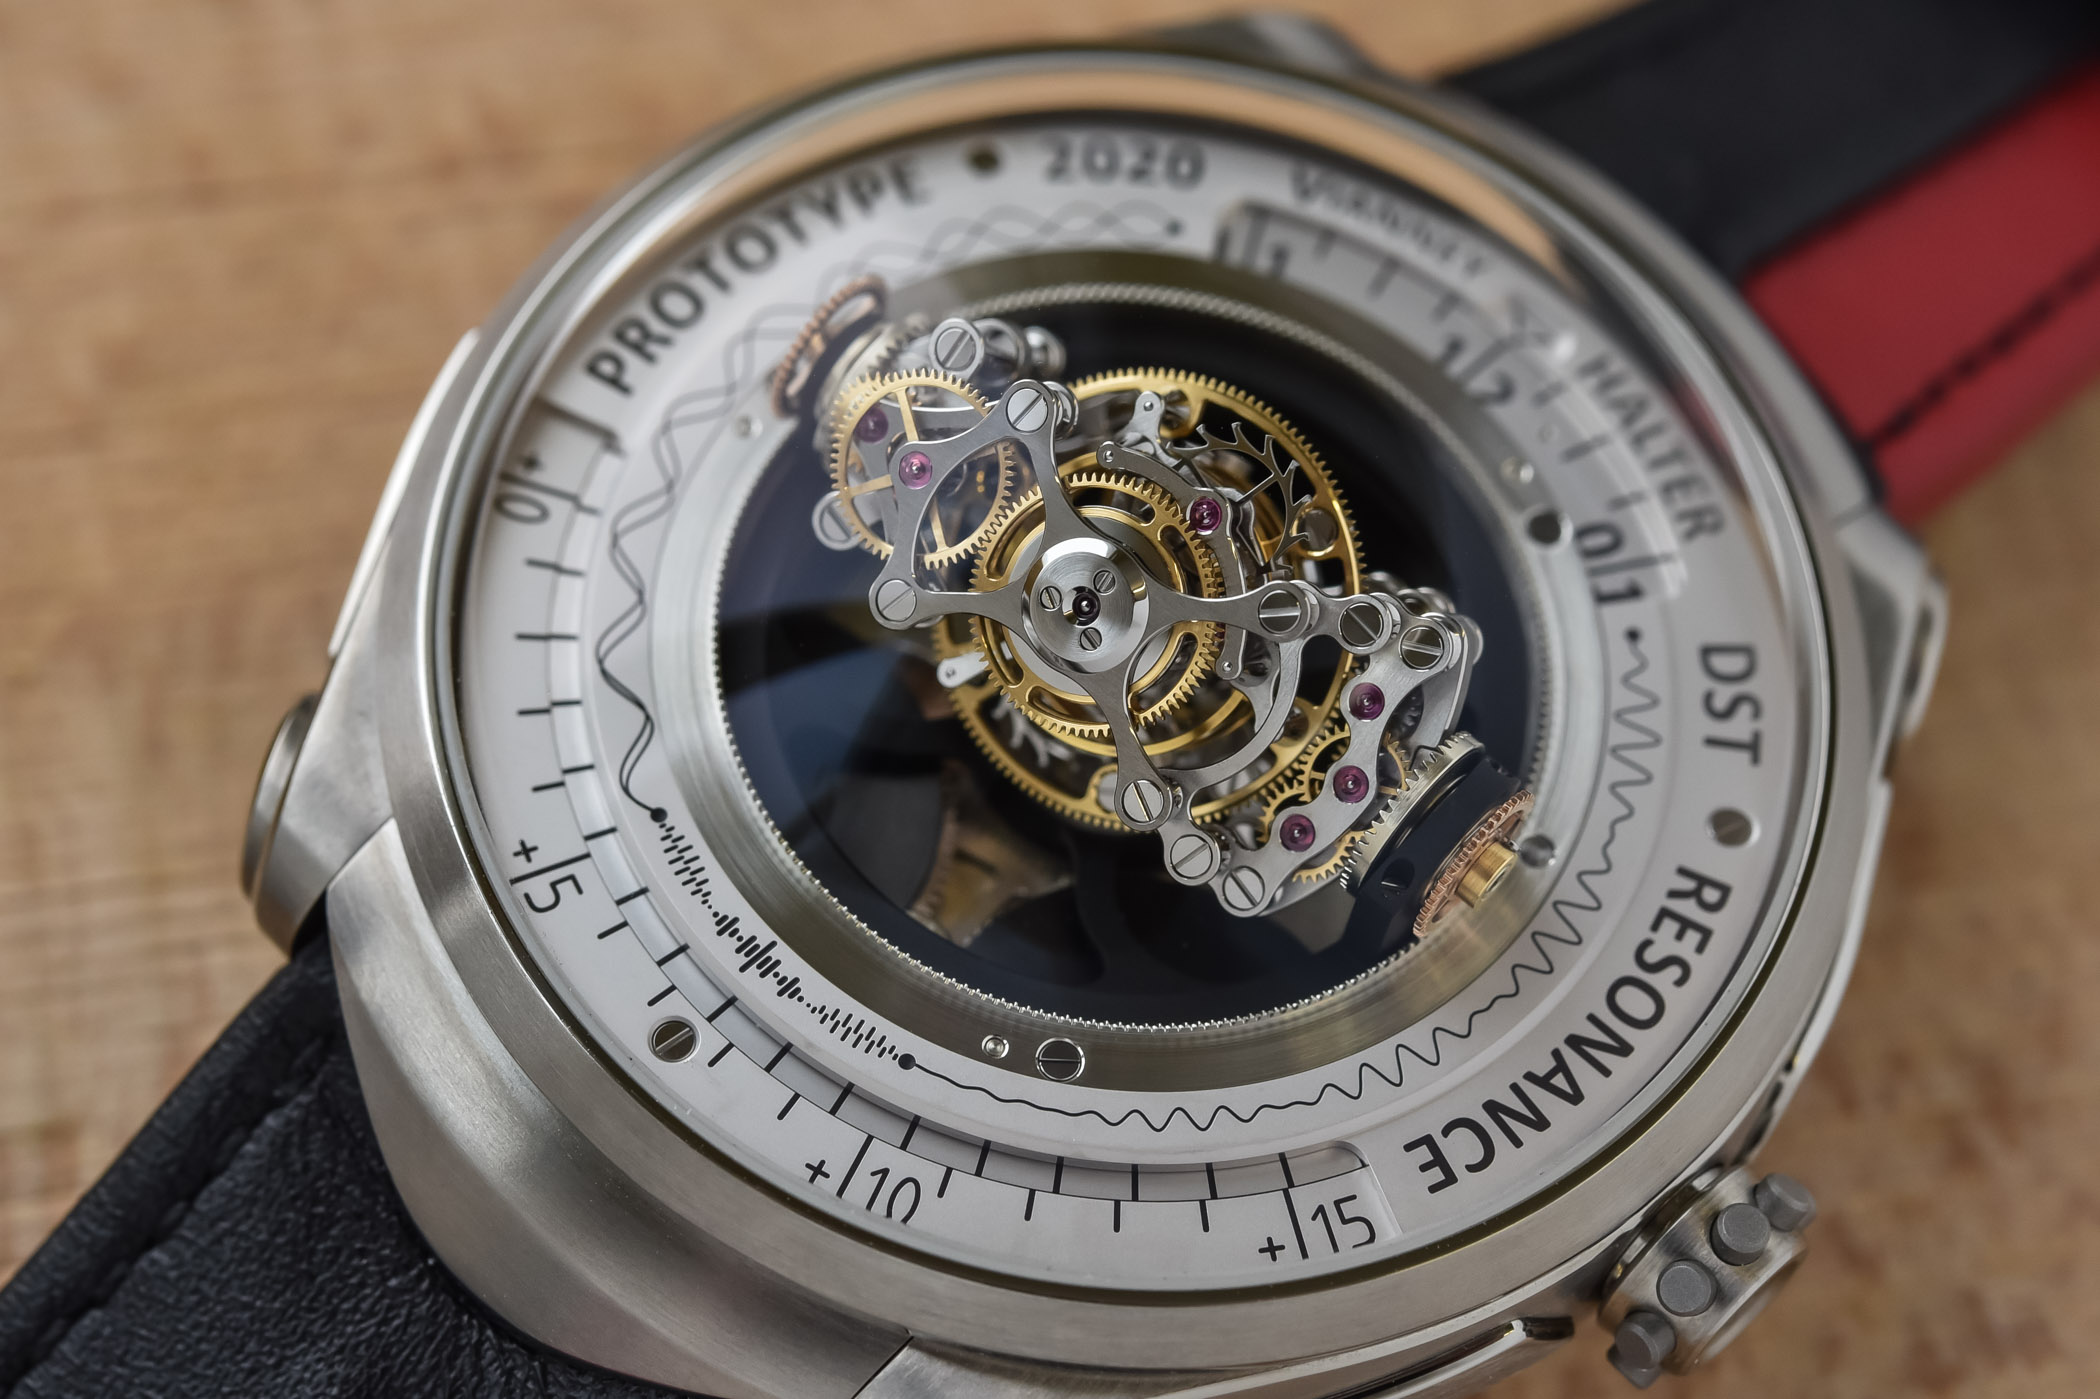 Vianney Halter Deep Space Resonance Tourbillon Prototype